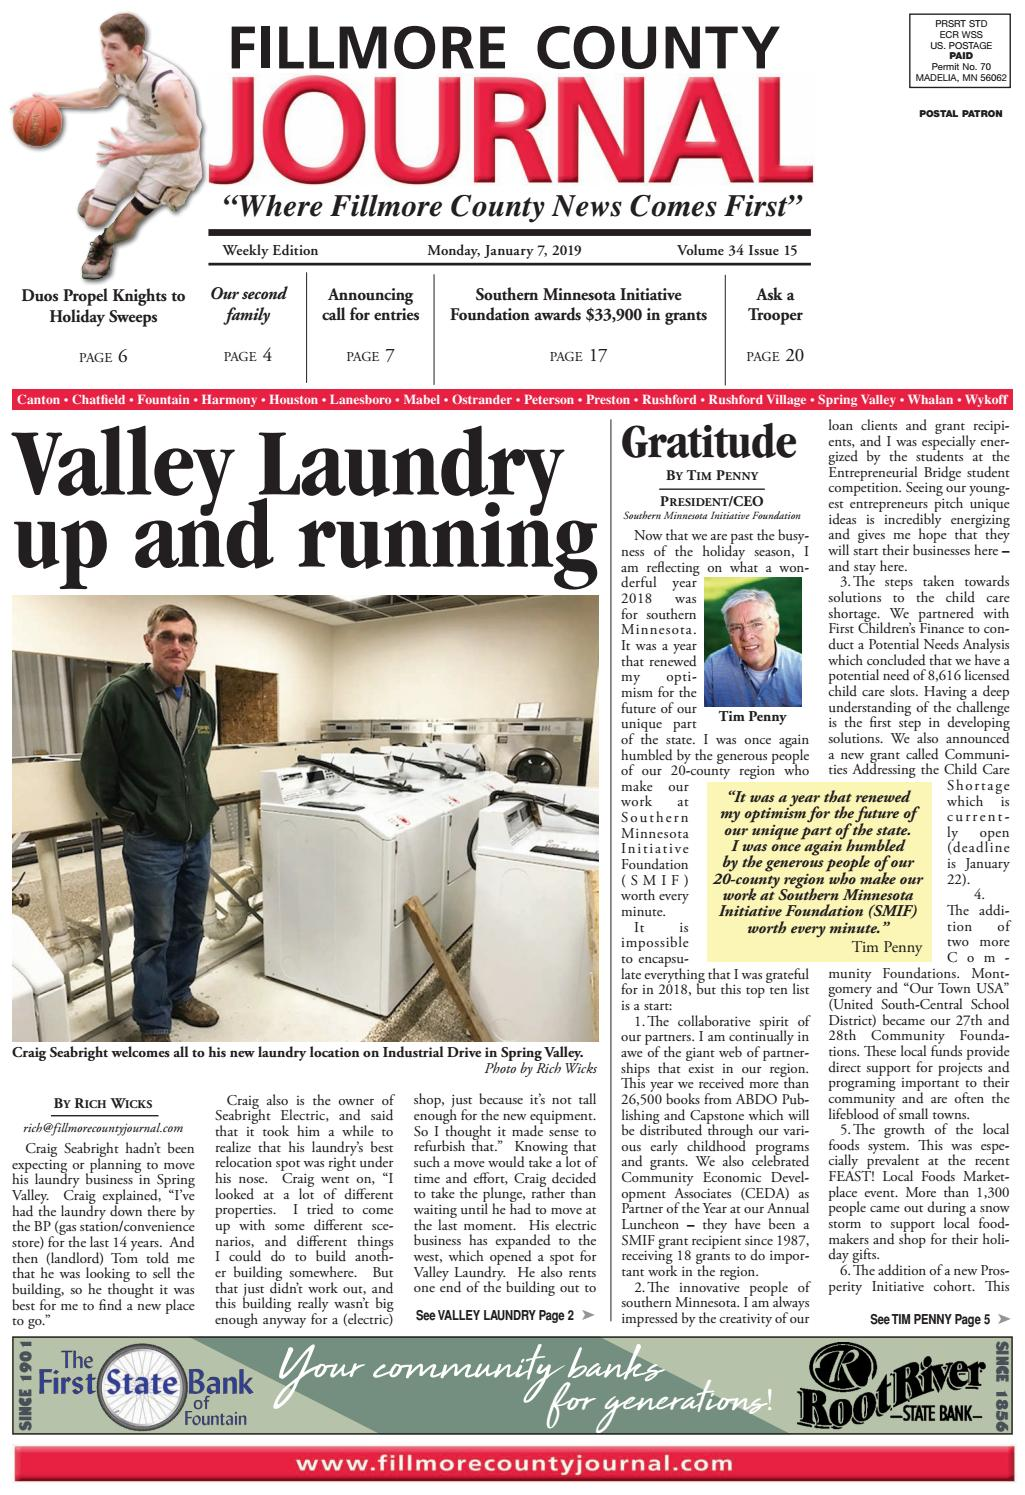 Fillmore County Journal - 1 7 2019 by Jason Sethre - issuu